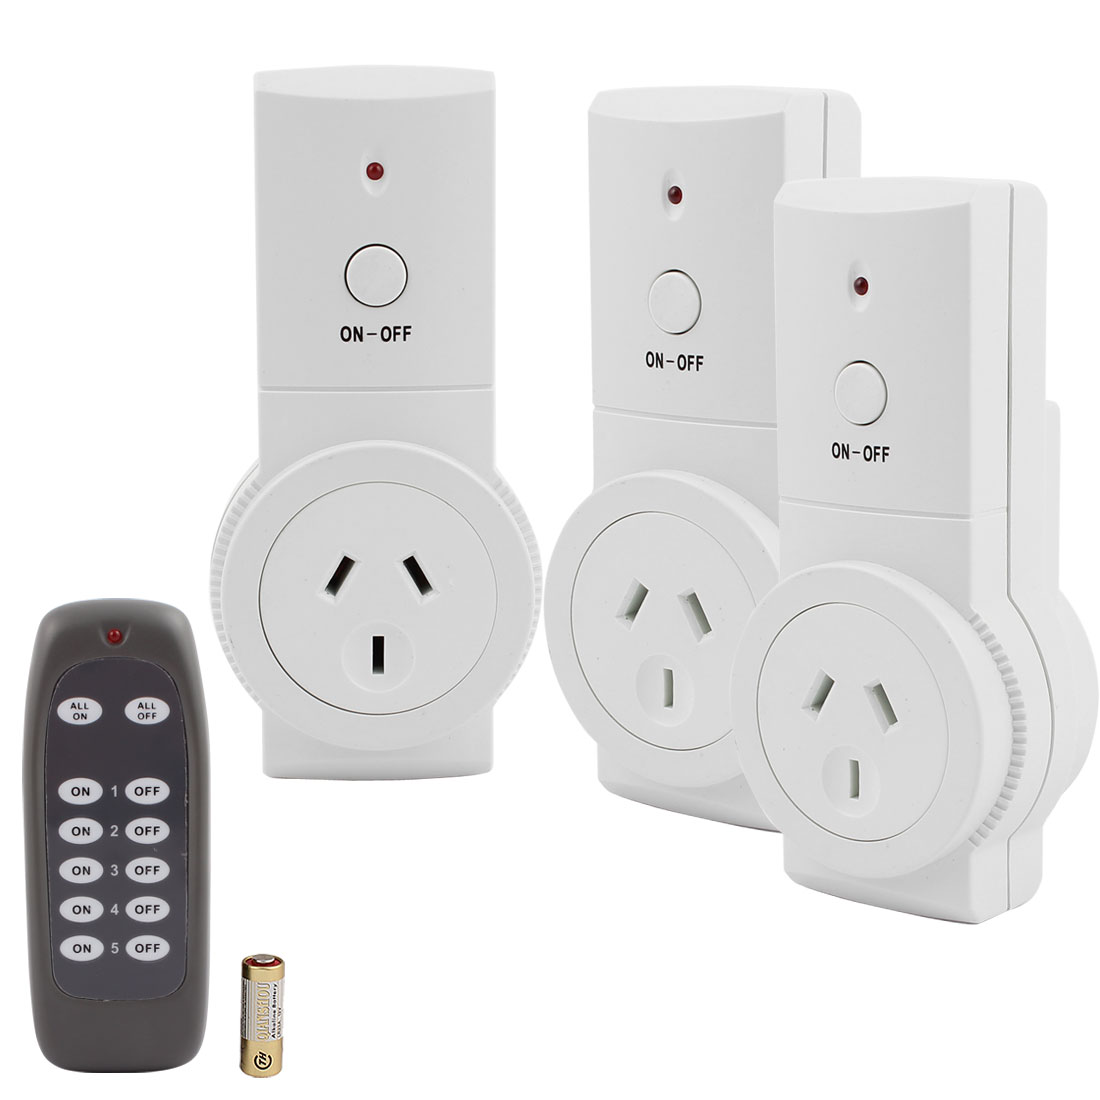 3 Pcs Wireless Power AU Sockets Switches Outlets AU Plug 240VAC Home Mains w 1 Remote Control